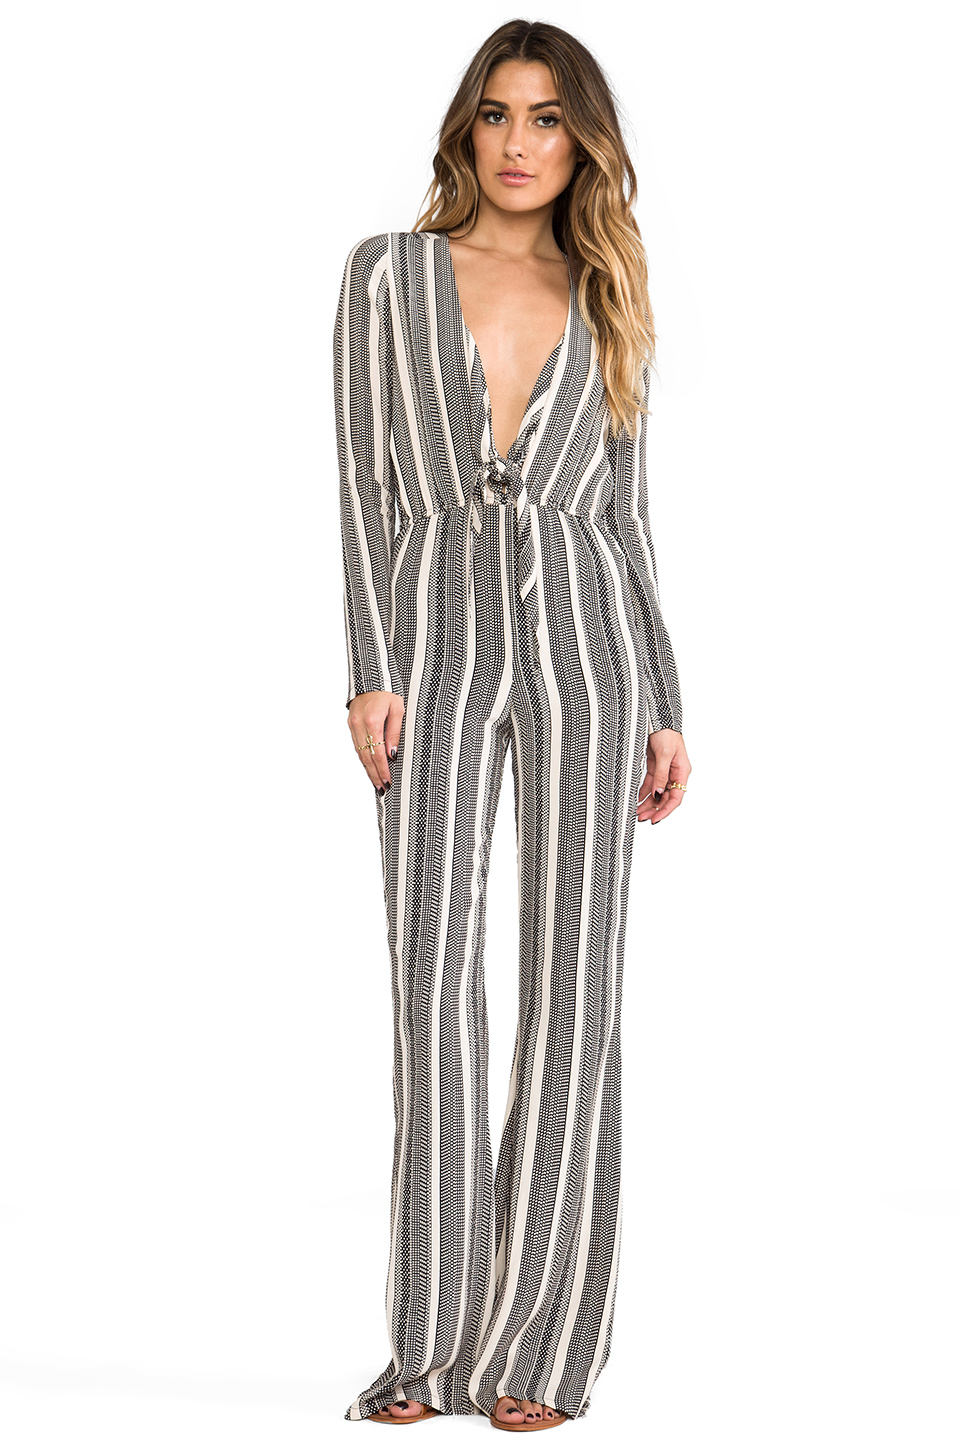 Stone Cold Fox Stardust Jumpsuit in Black & Ivory Stripe